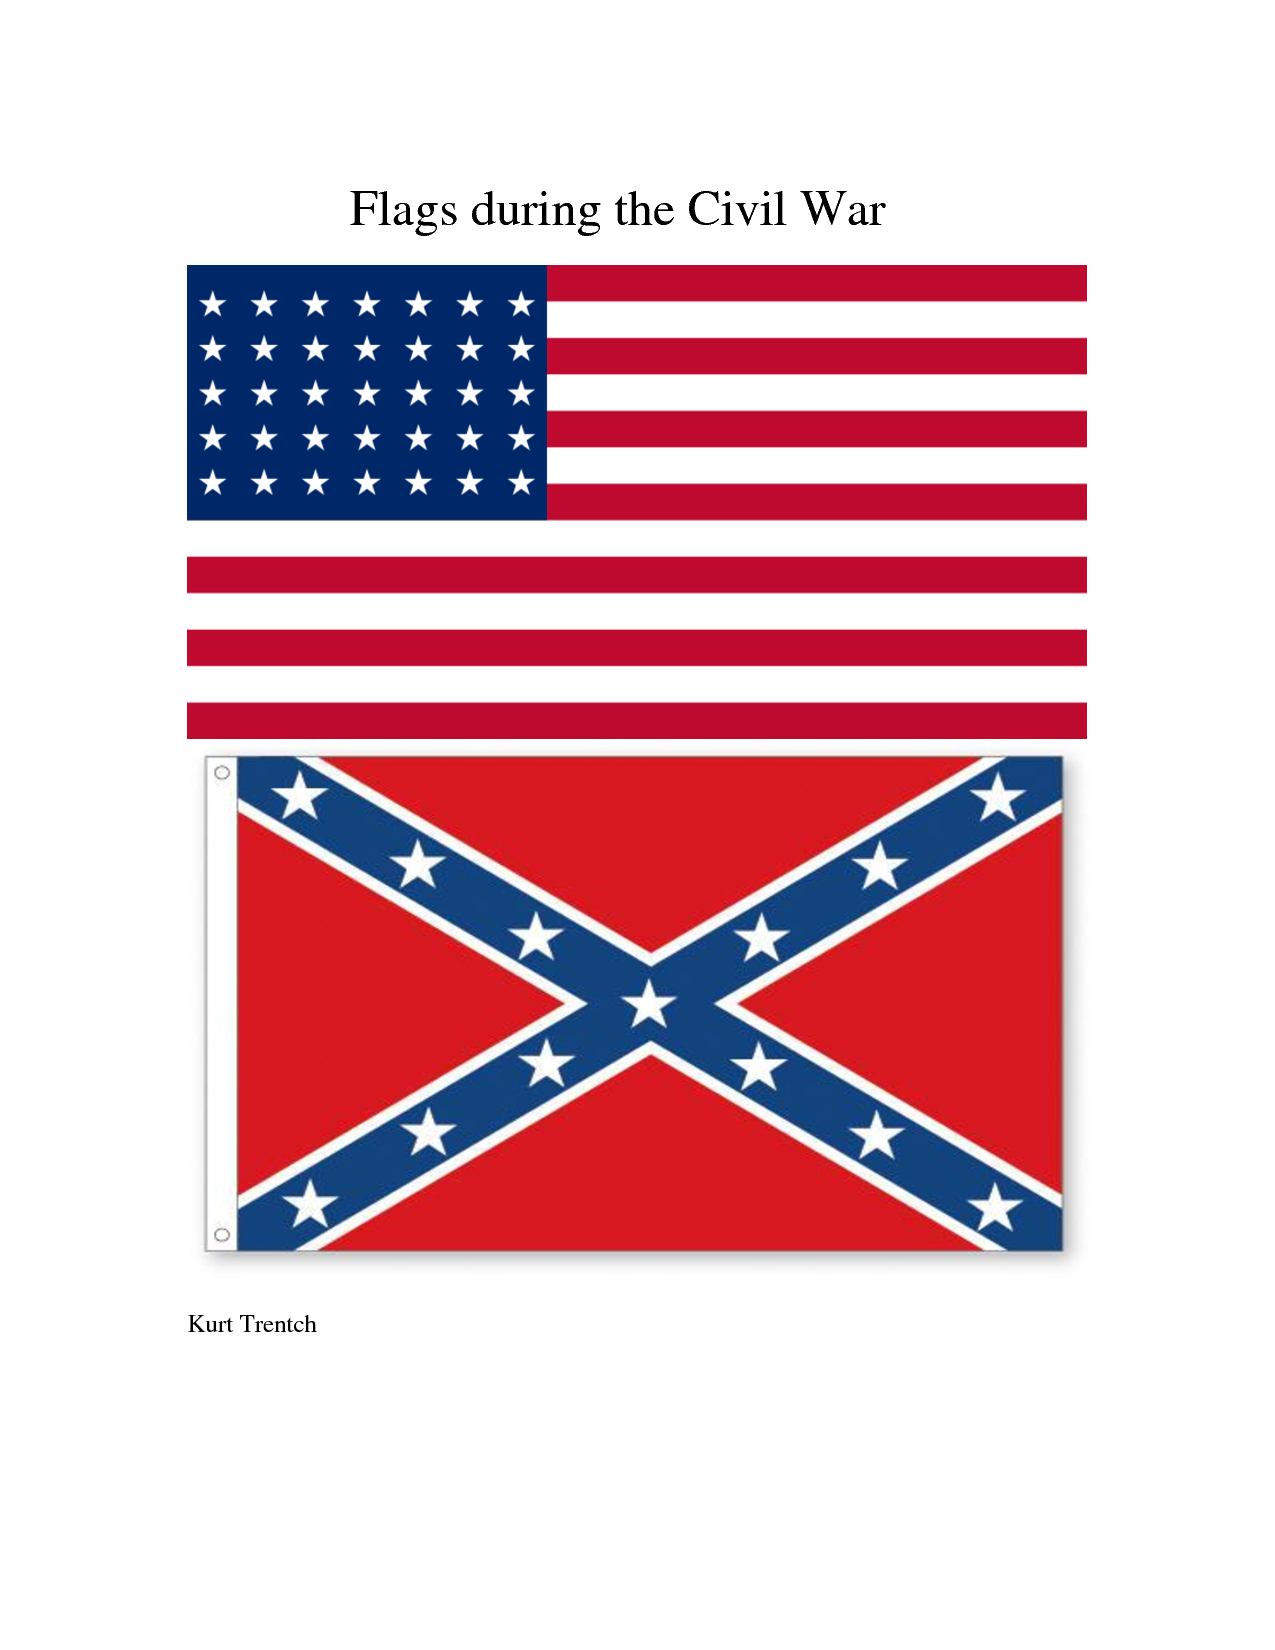 union army flags of civil war